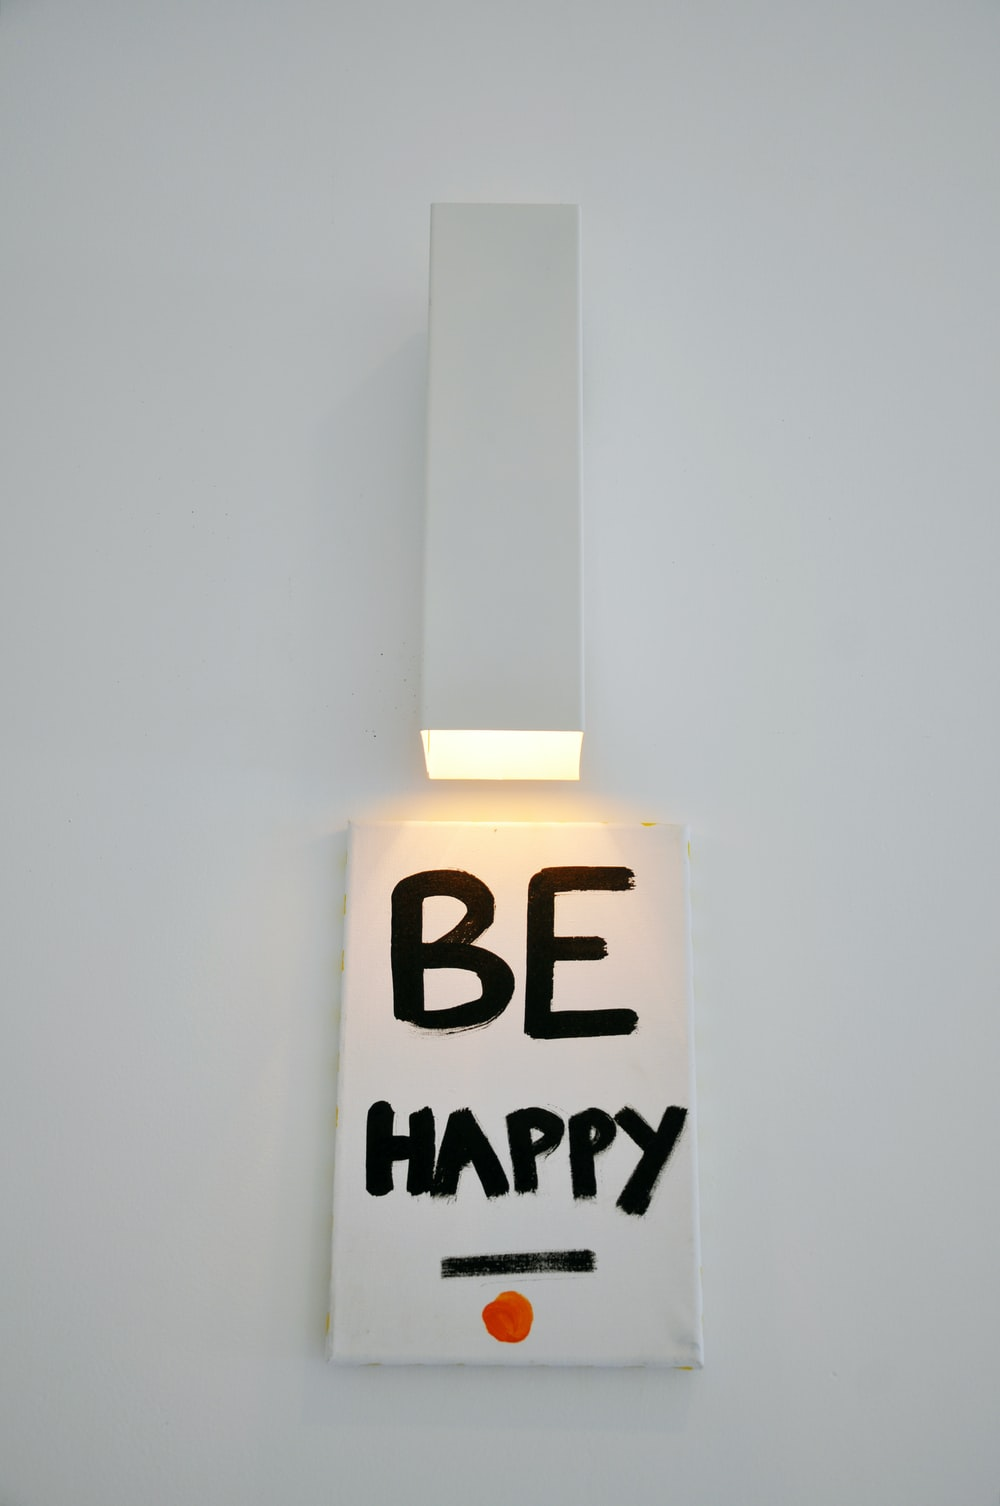 be happy sign on white surface